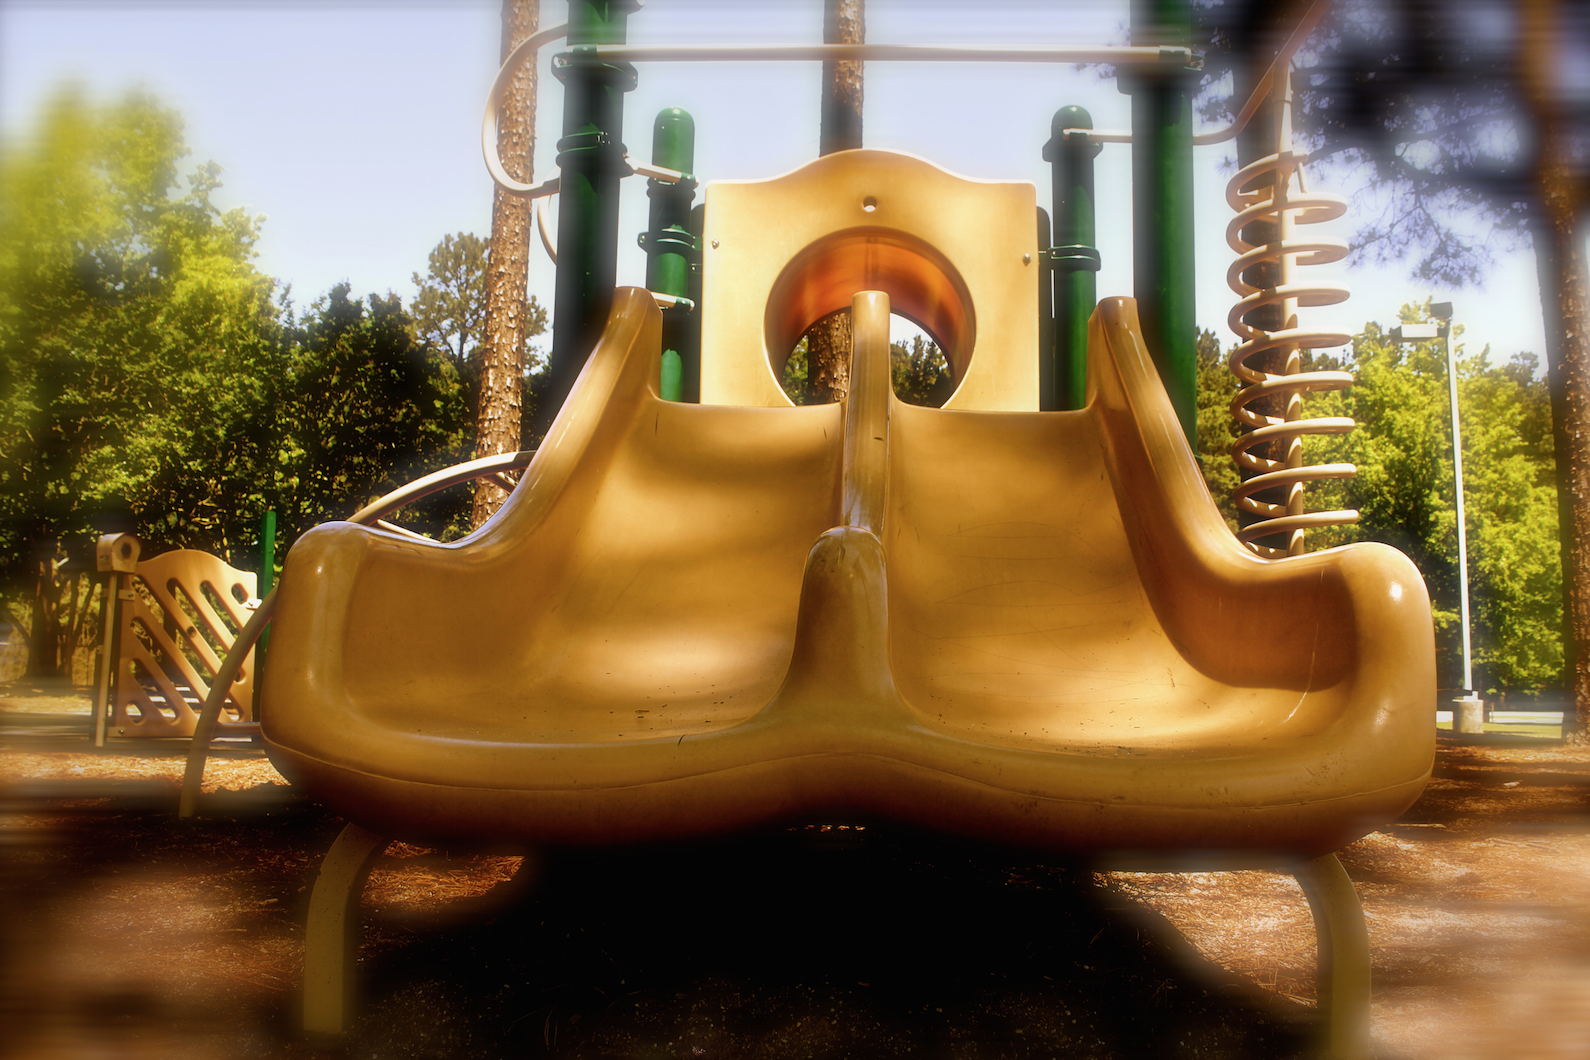 When Playgrounds Become Nightmares